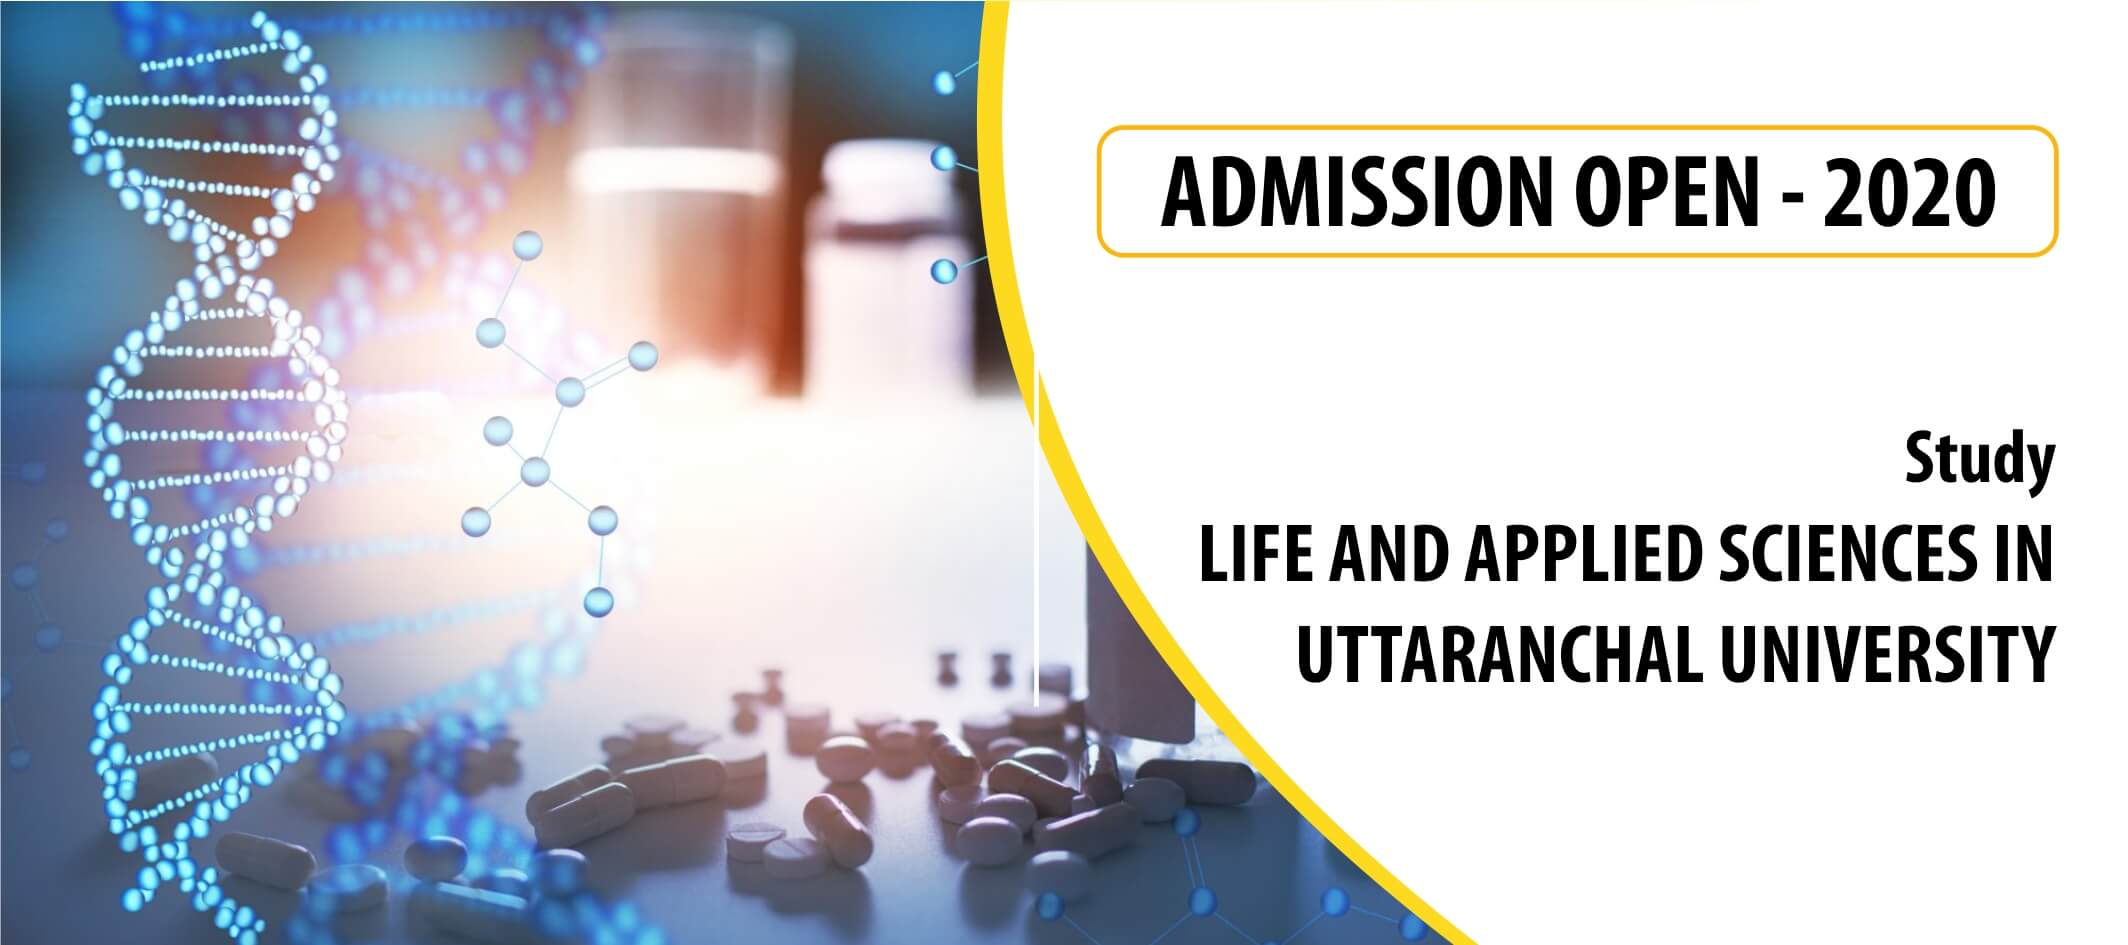 SLIDER DESIGN ADMISSION OPEN LIFE AND APPLIED SCIENCES